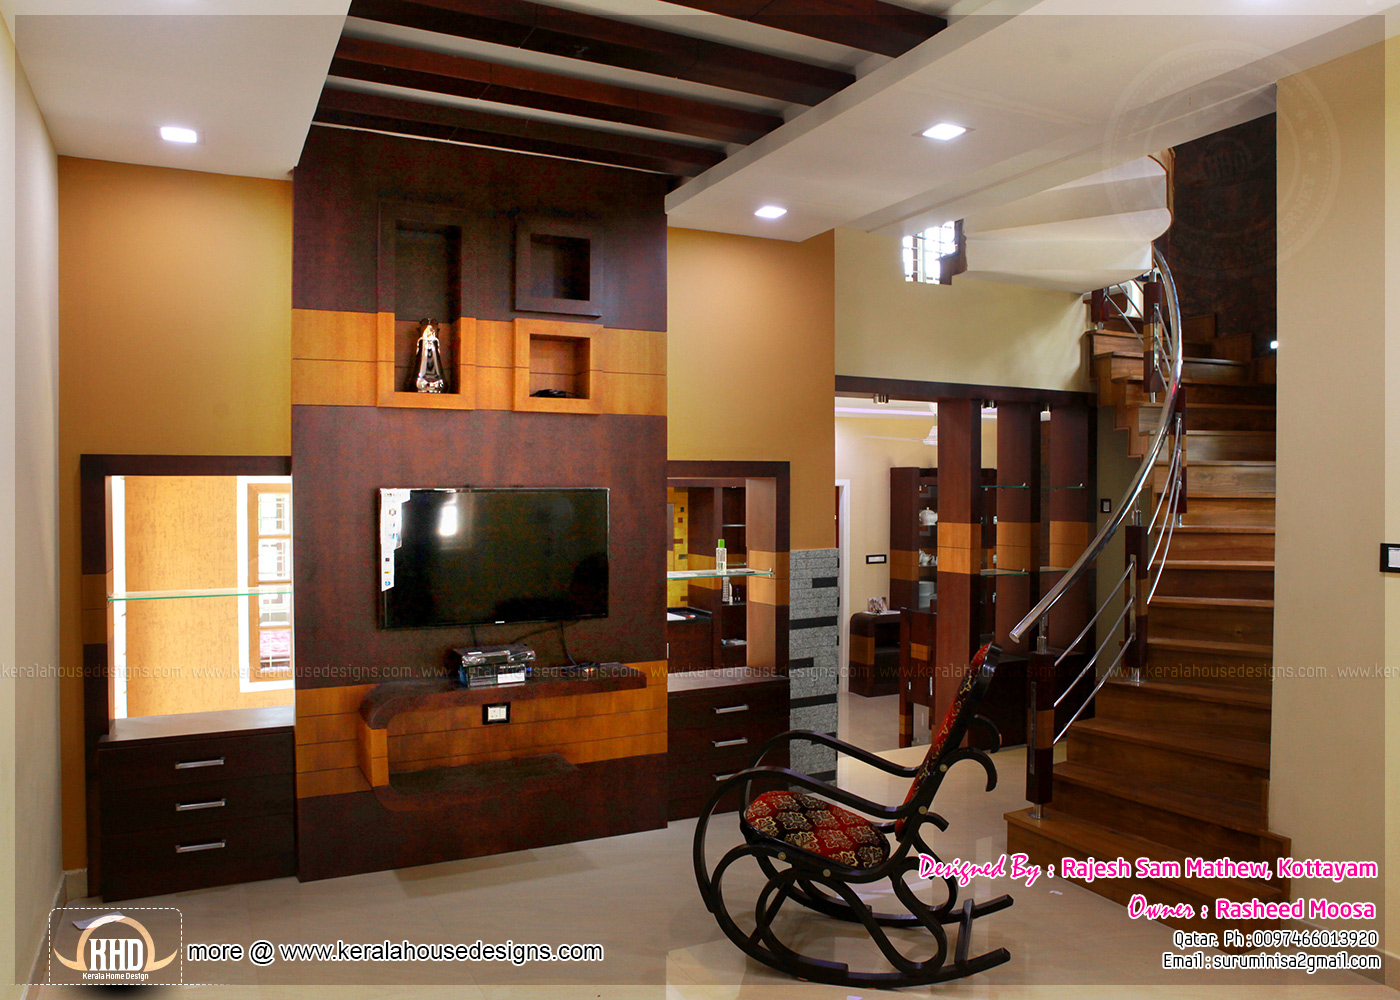 Kerala interior design with photos kerala home design Low cost interior design for homes in kerala